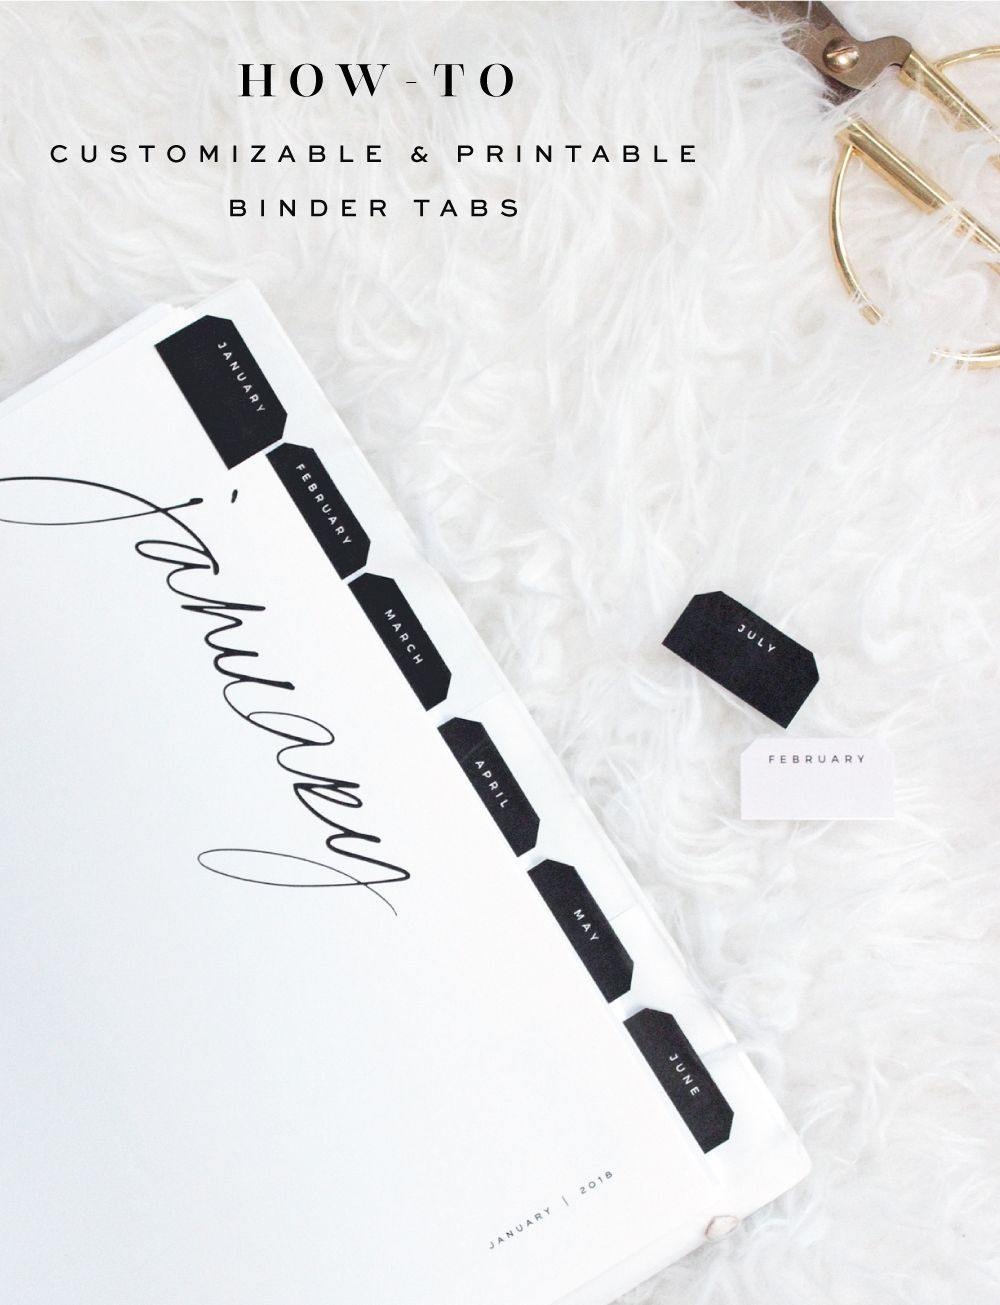 A Customizable and Free Printable Binder Tabs Tutorial